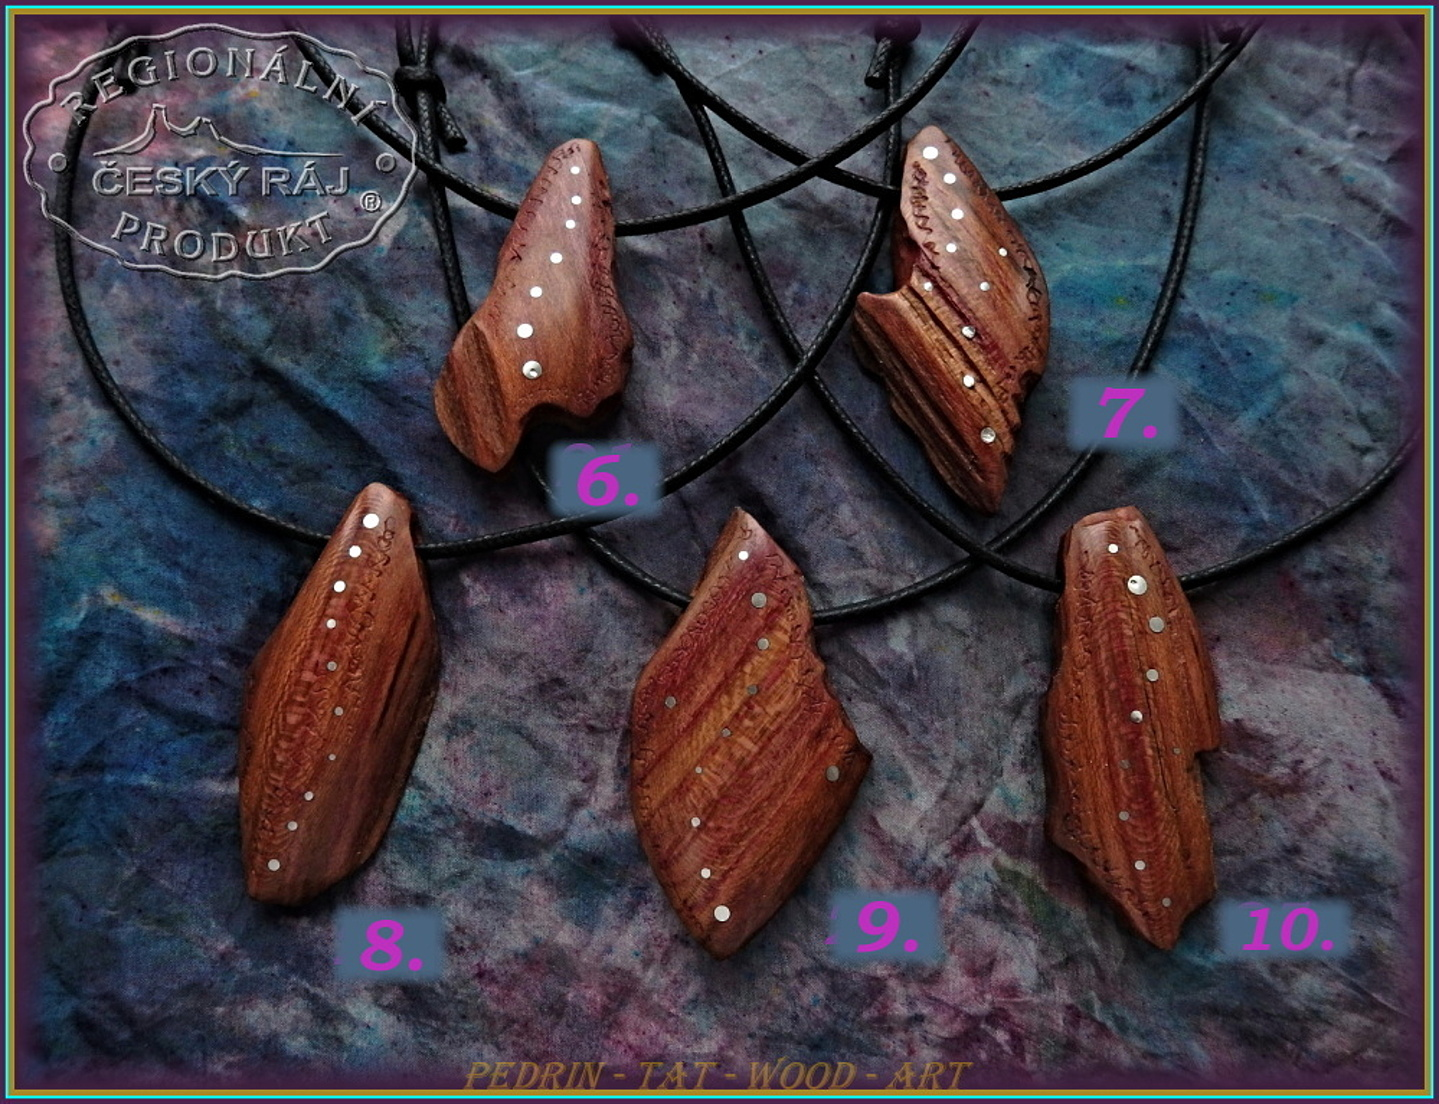 WOODEN NECKLACES NH-553 - 6.7.8.9.10 - ADJUSTABLE KNOT